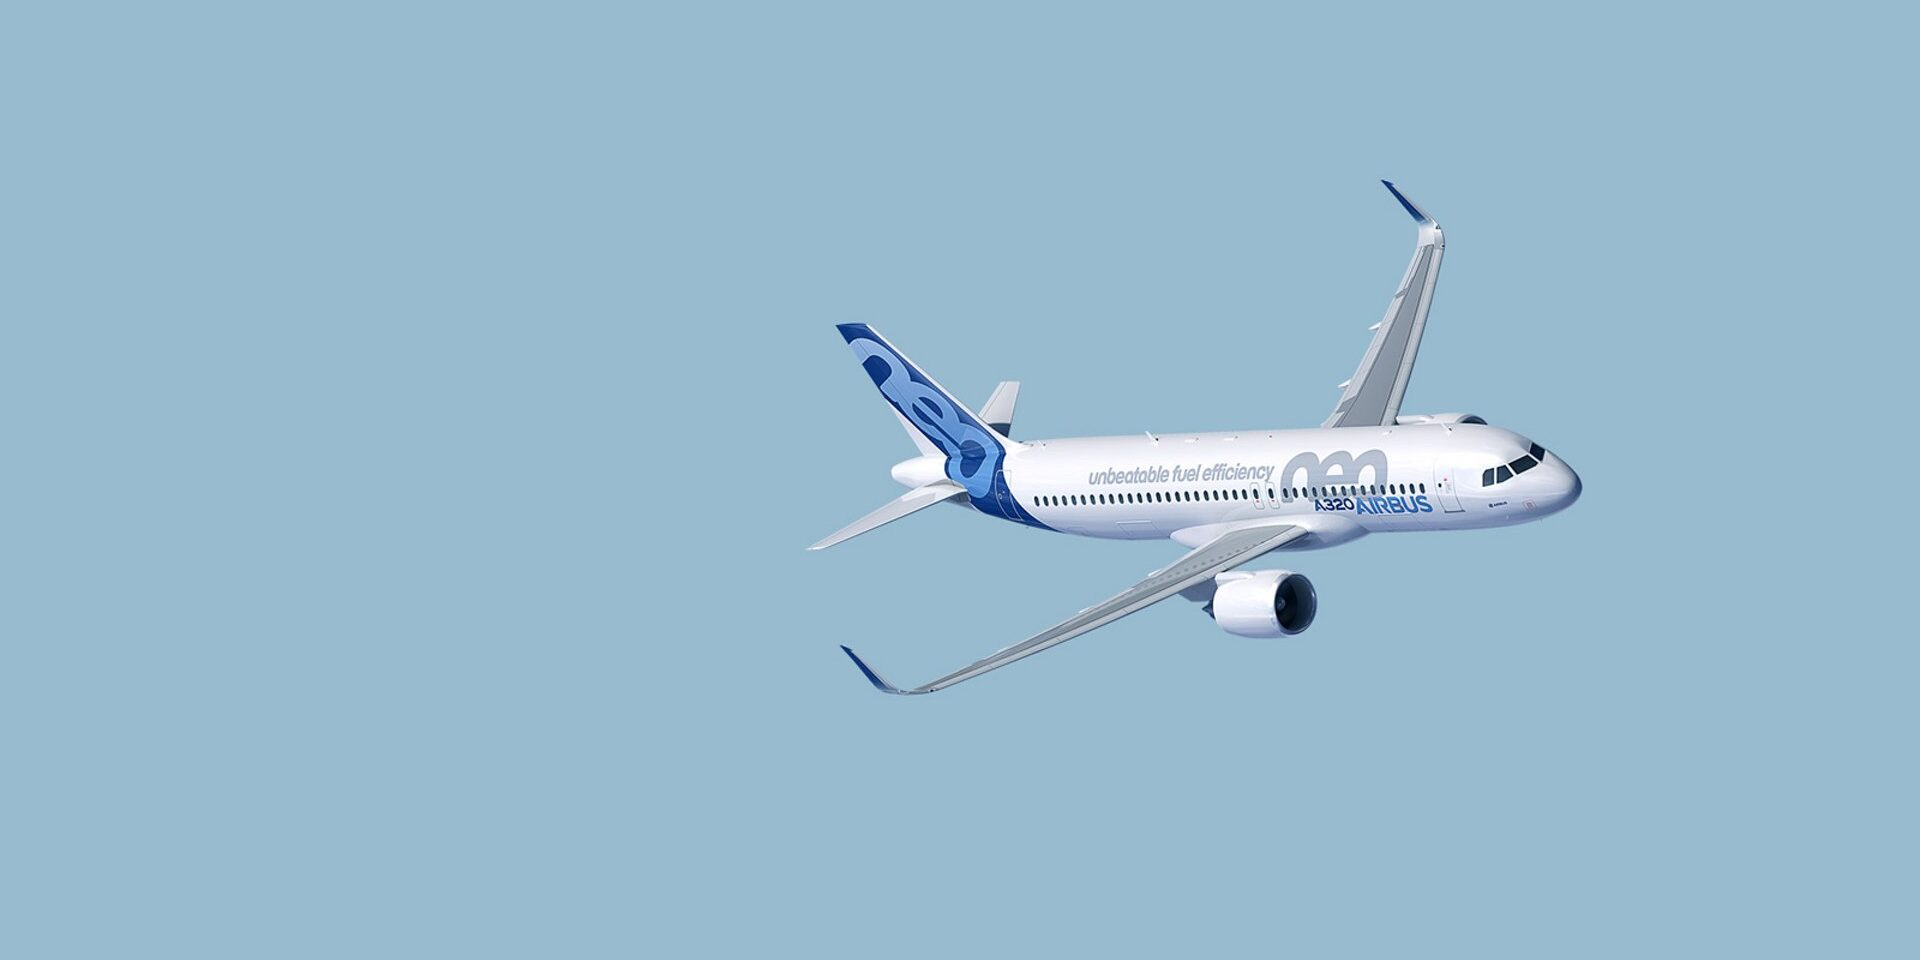 commercial-aircraft-stage_A320neo